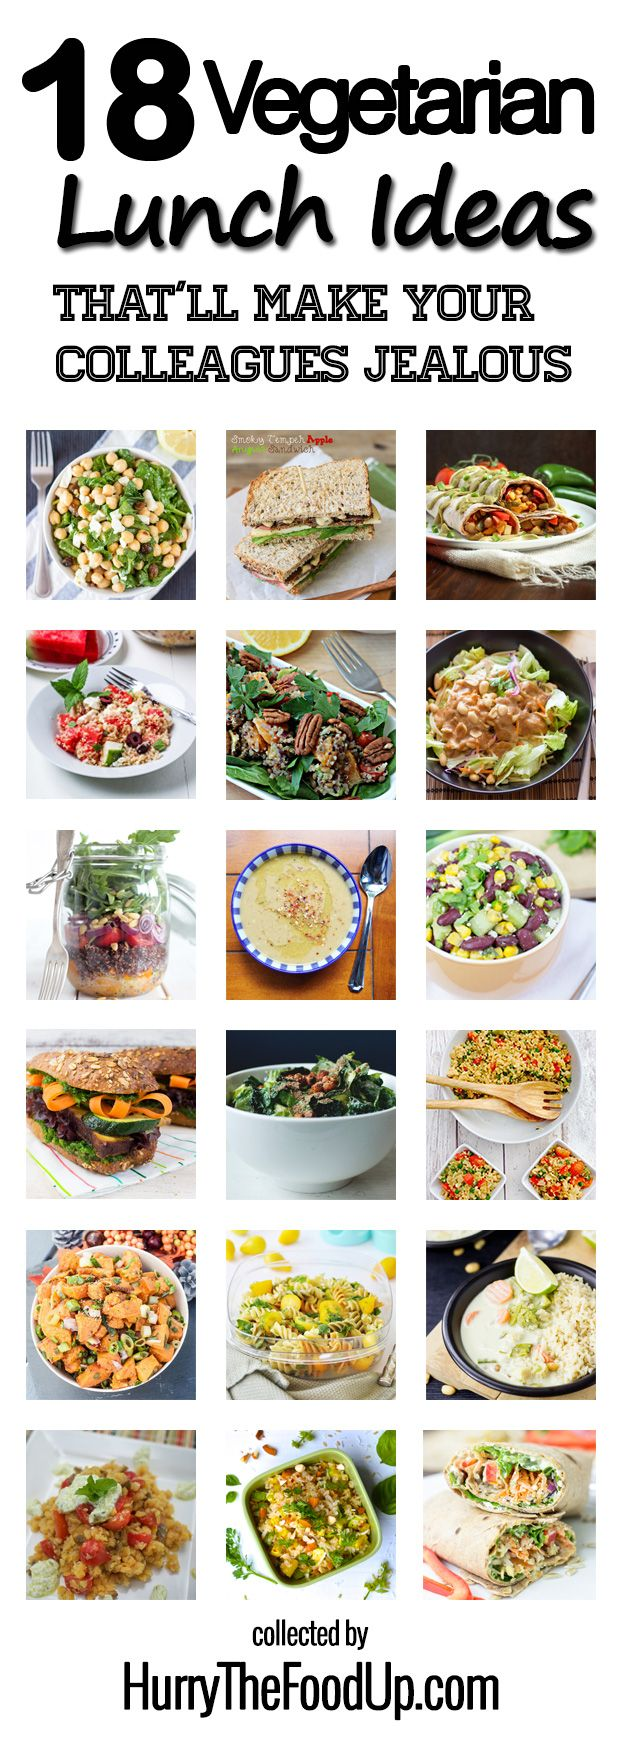 18 Vegetarian Lunch Ideas That Will Make Your Colleagues